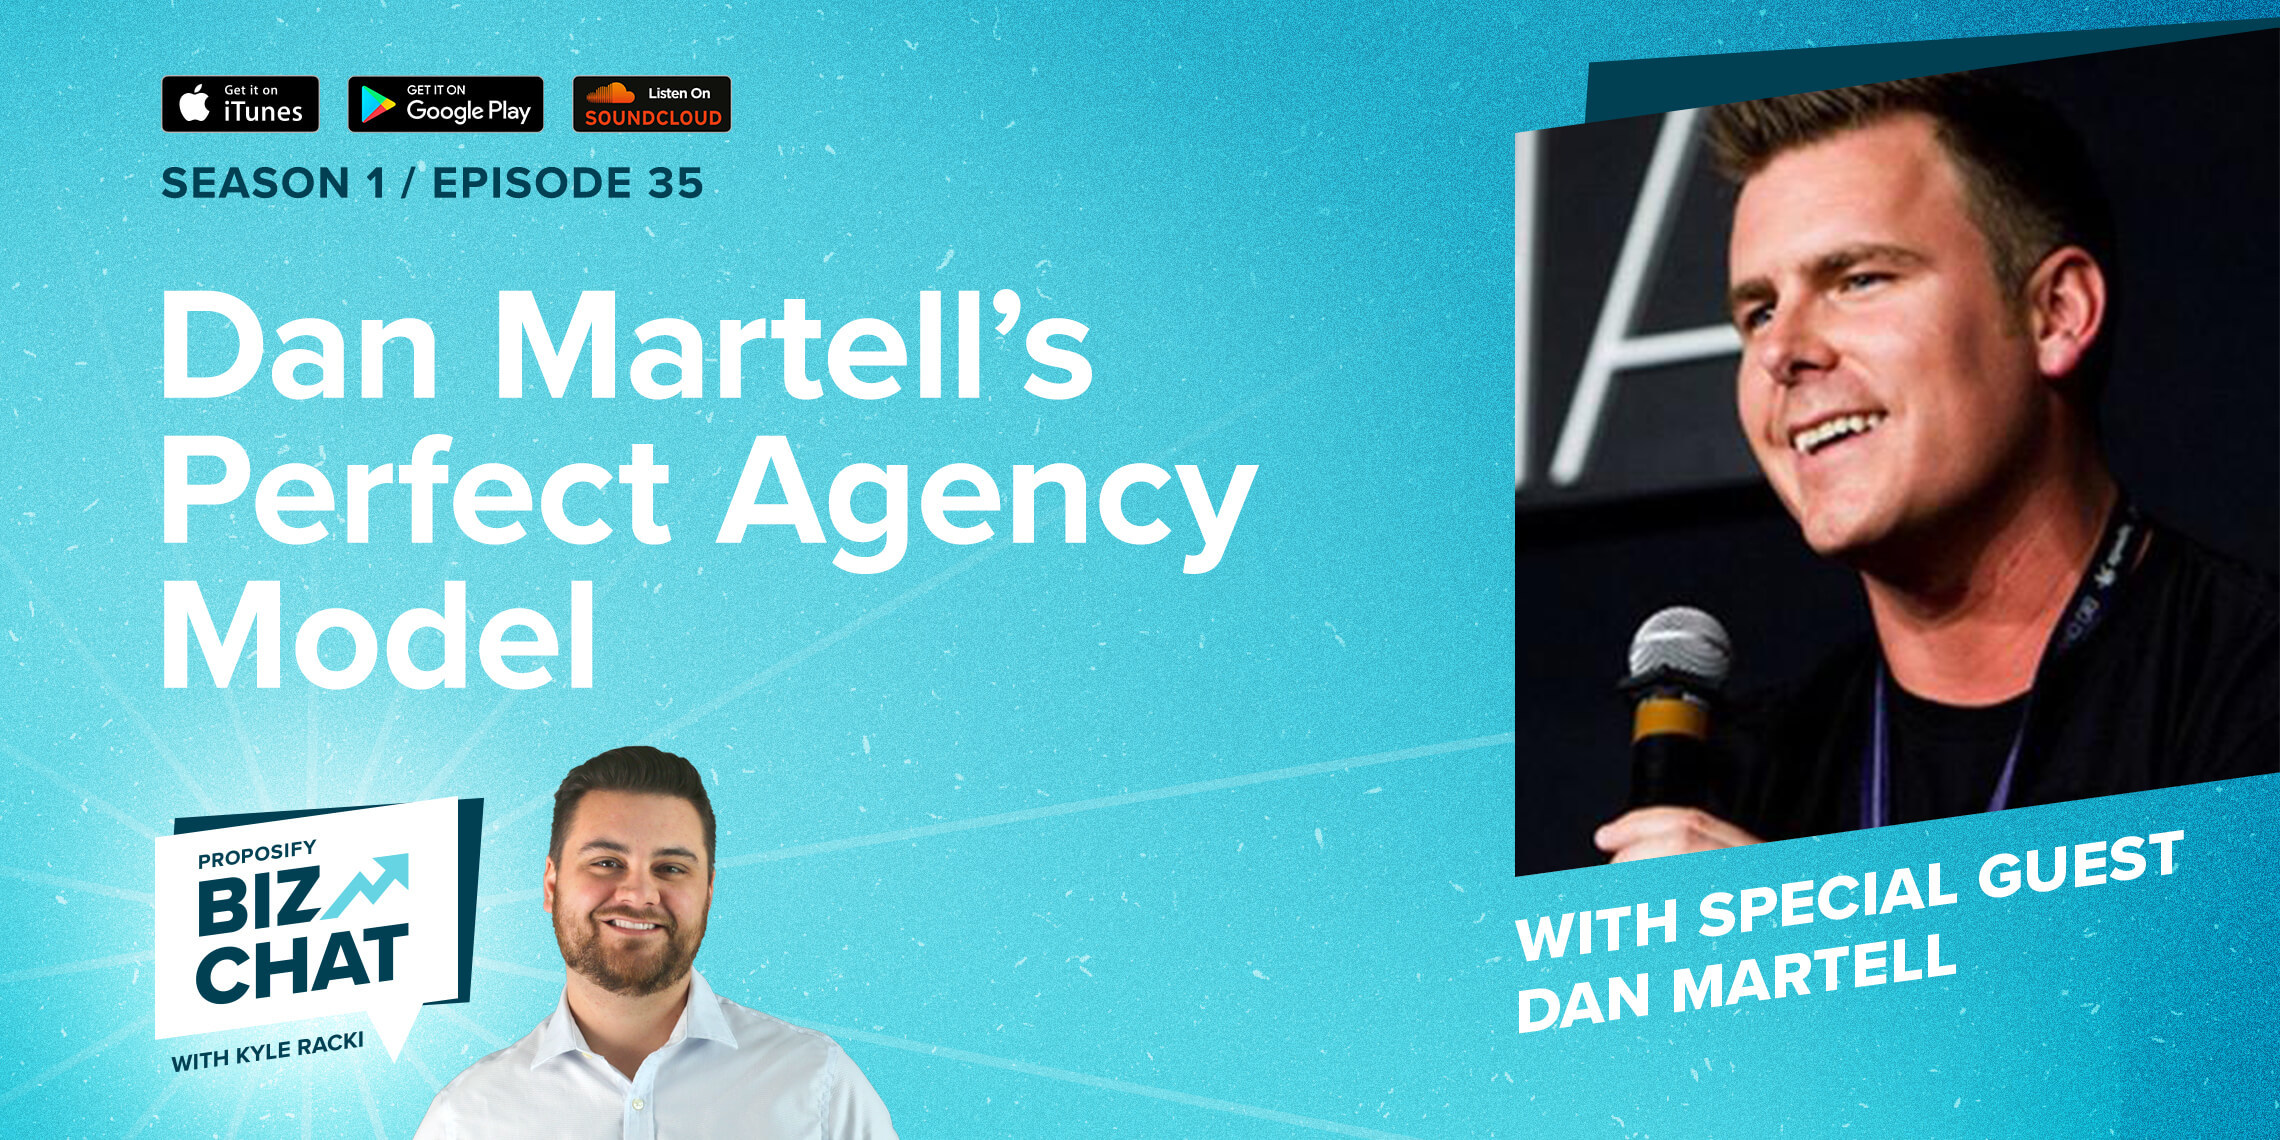 Dan Martell's Perfect Agency Model